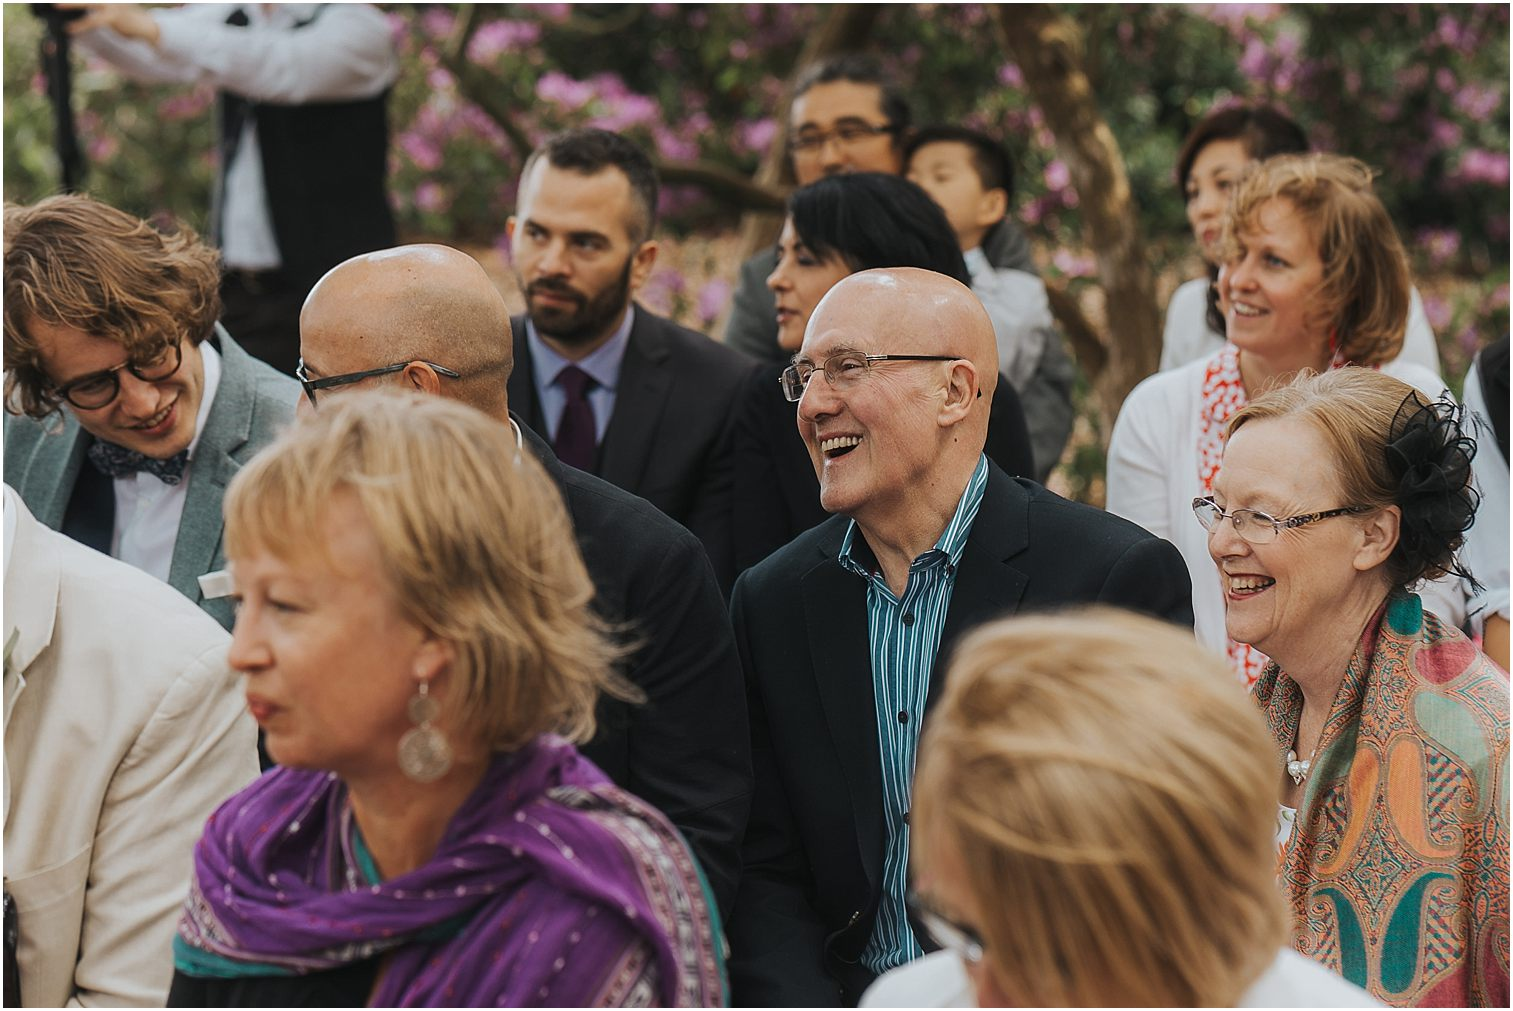 Guests at a wedding smiling